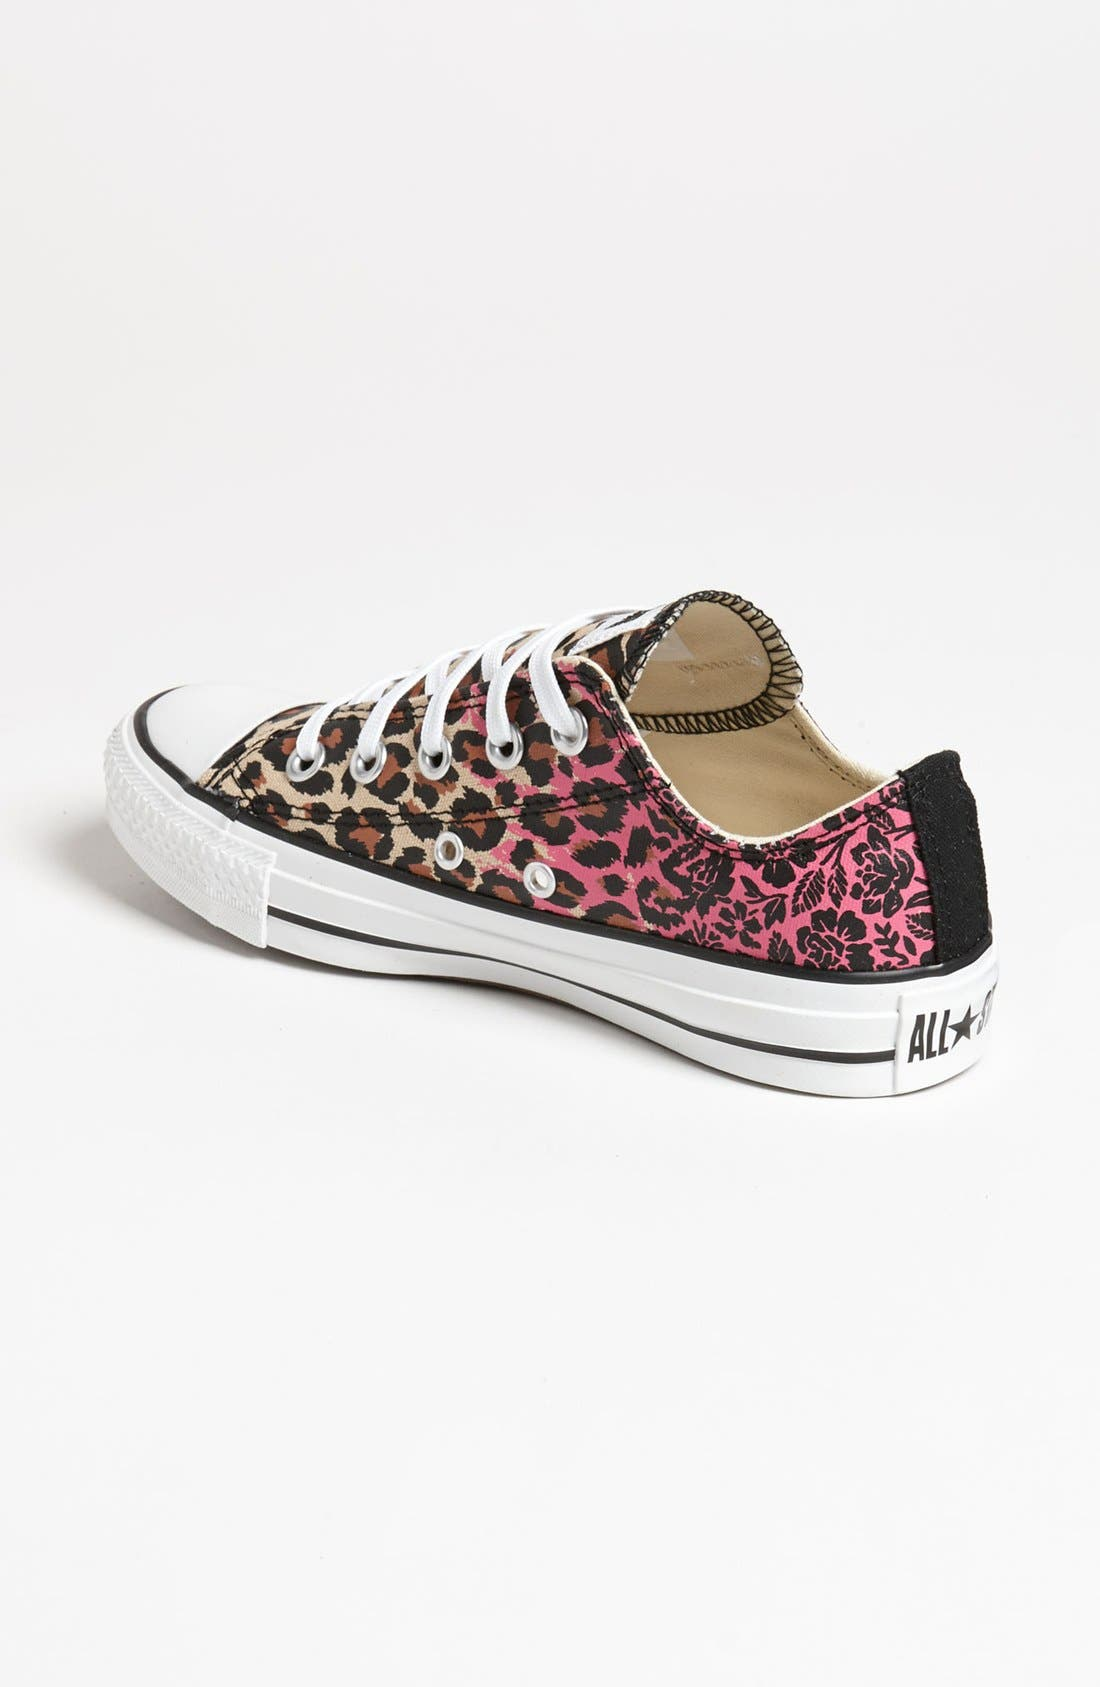 Alternate Image 2  - Converse Chuck Taylor® All Star® Animal Print Sneaker (Women)